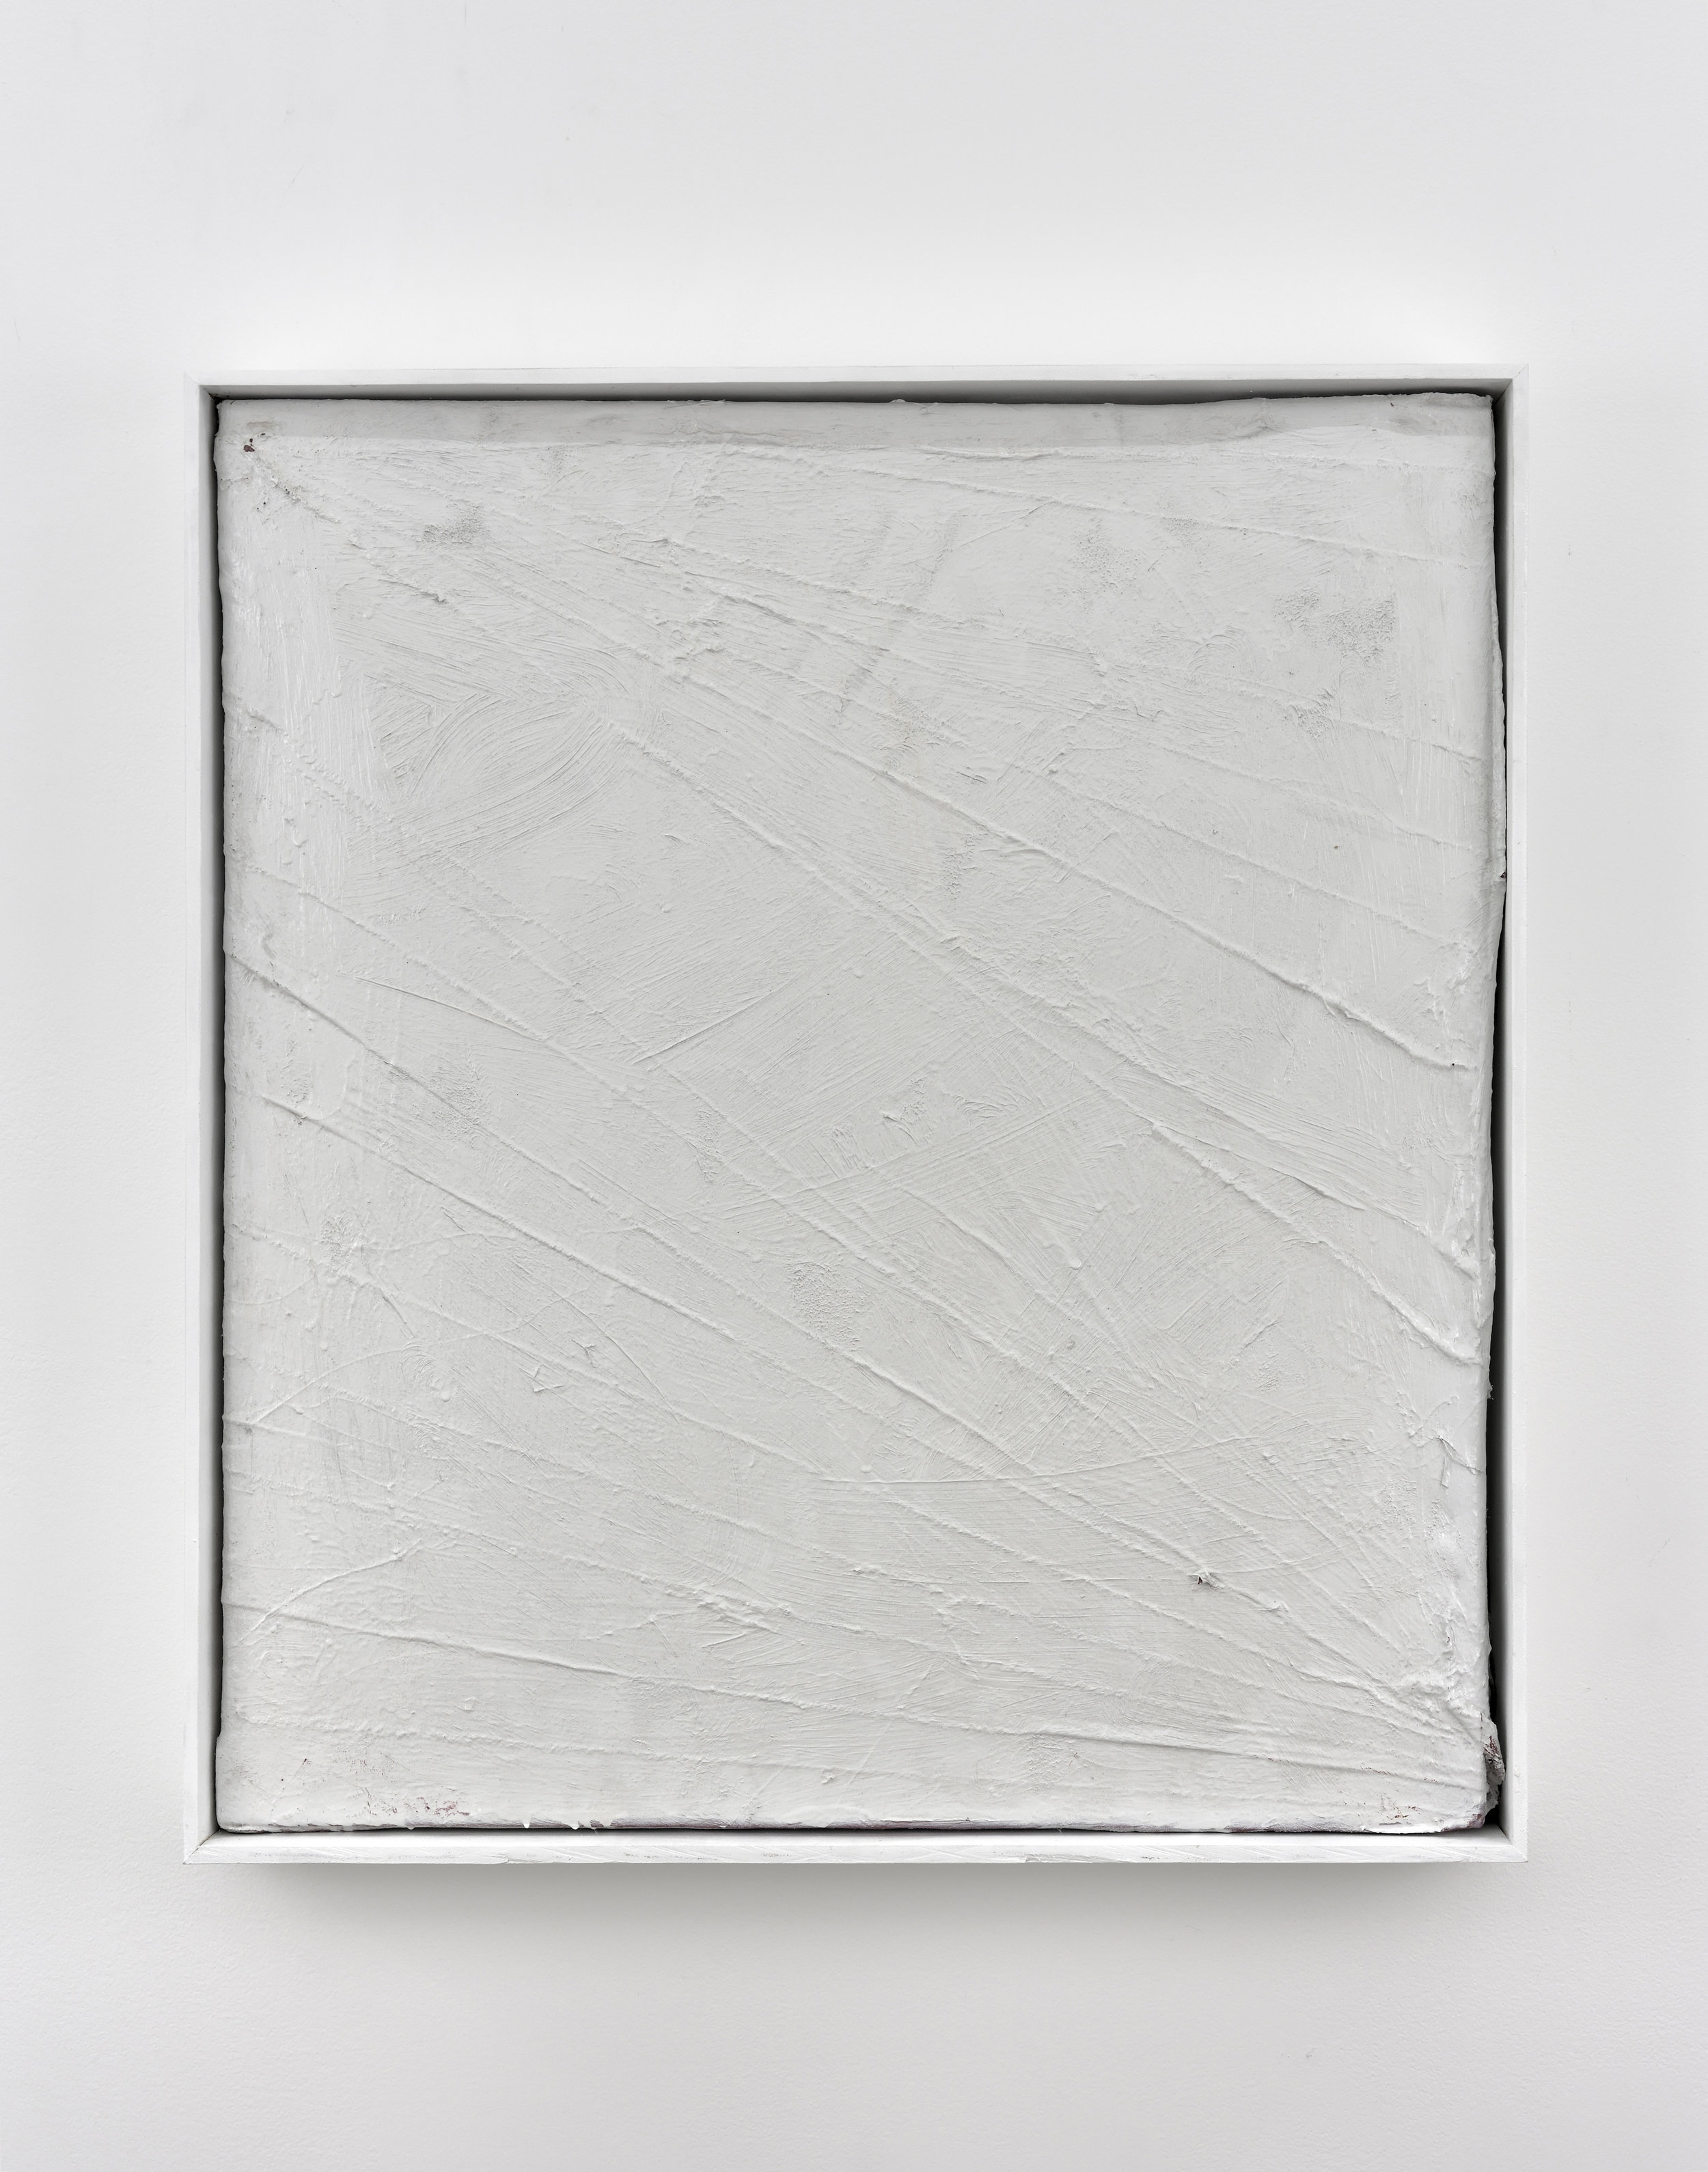 Matthew Chambers, That Clear Note of Resentment in his Voice, 2013 acrylic, enamel based adhesive and nylon flocking on canvas 72,5 x 65,5 x 9,5 cm - 28 1/2 x 25 3/4 x 3 3/4 inches (framed)